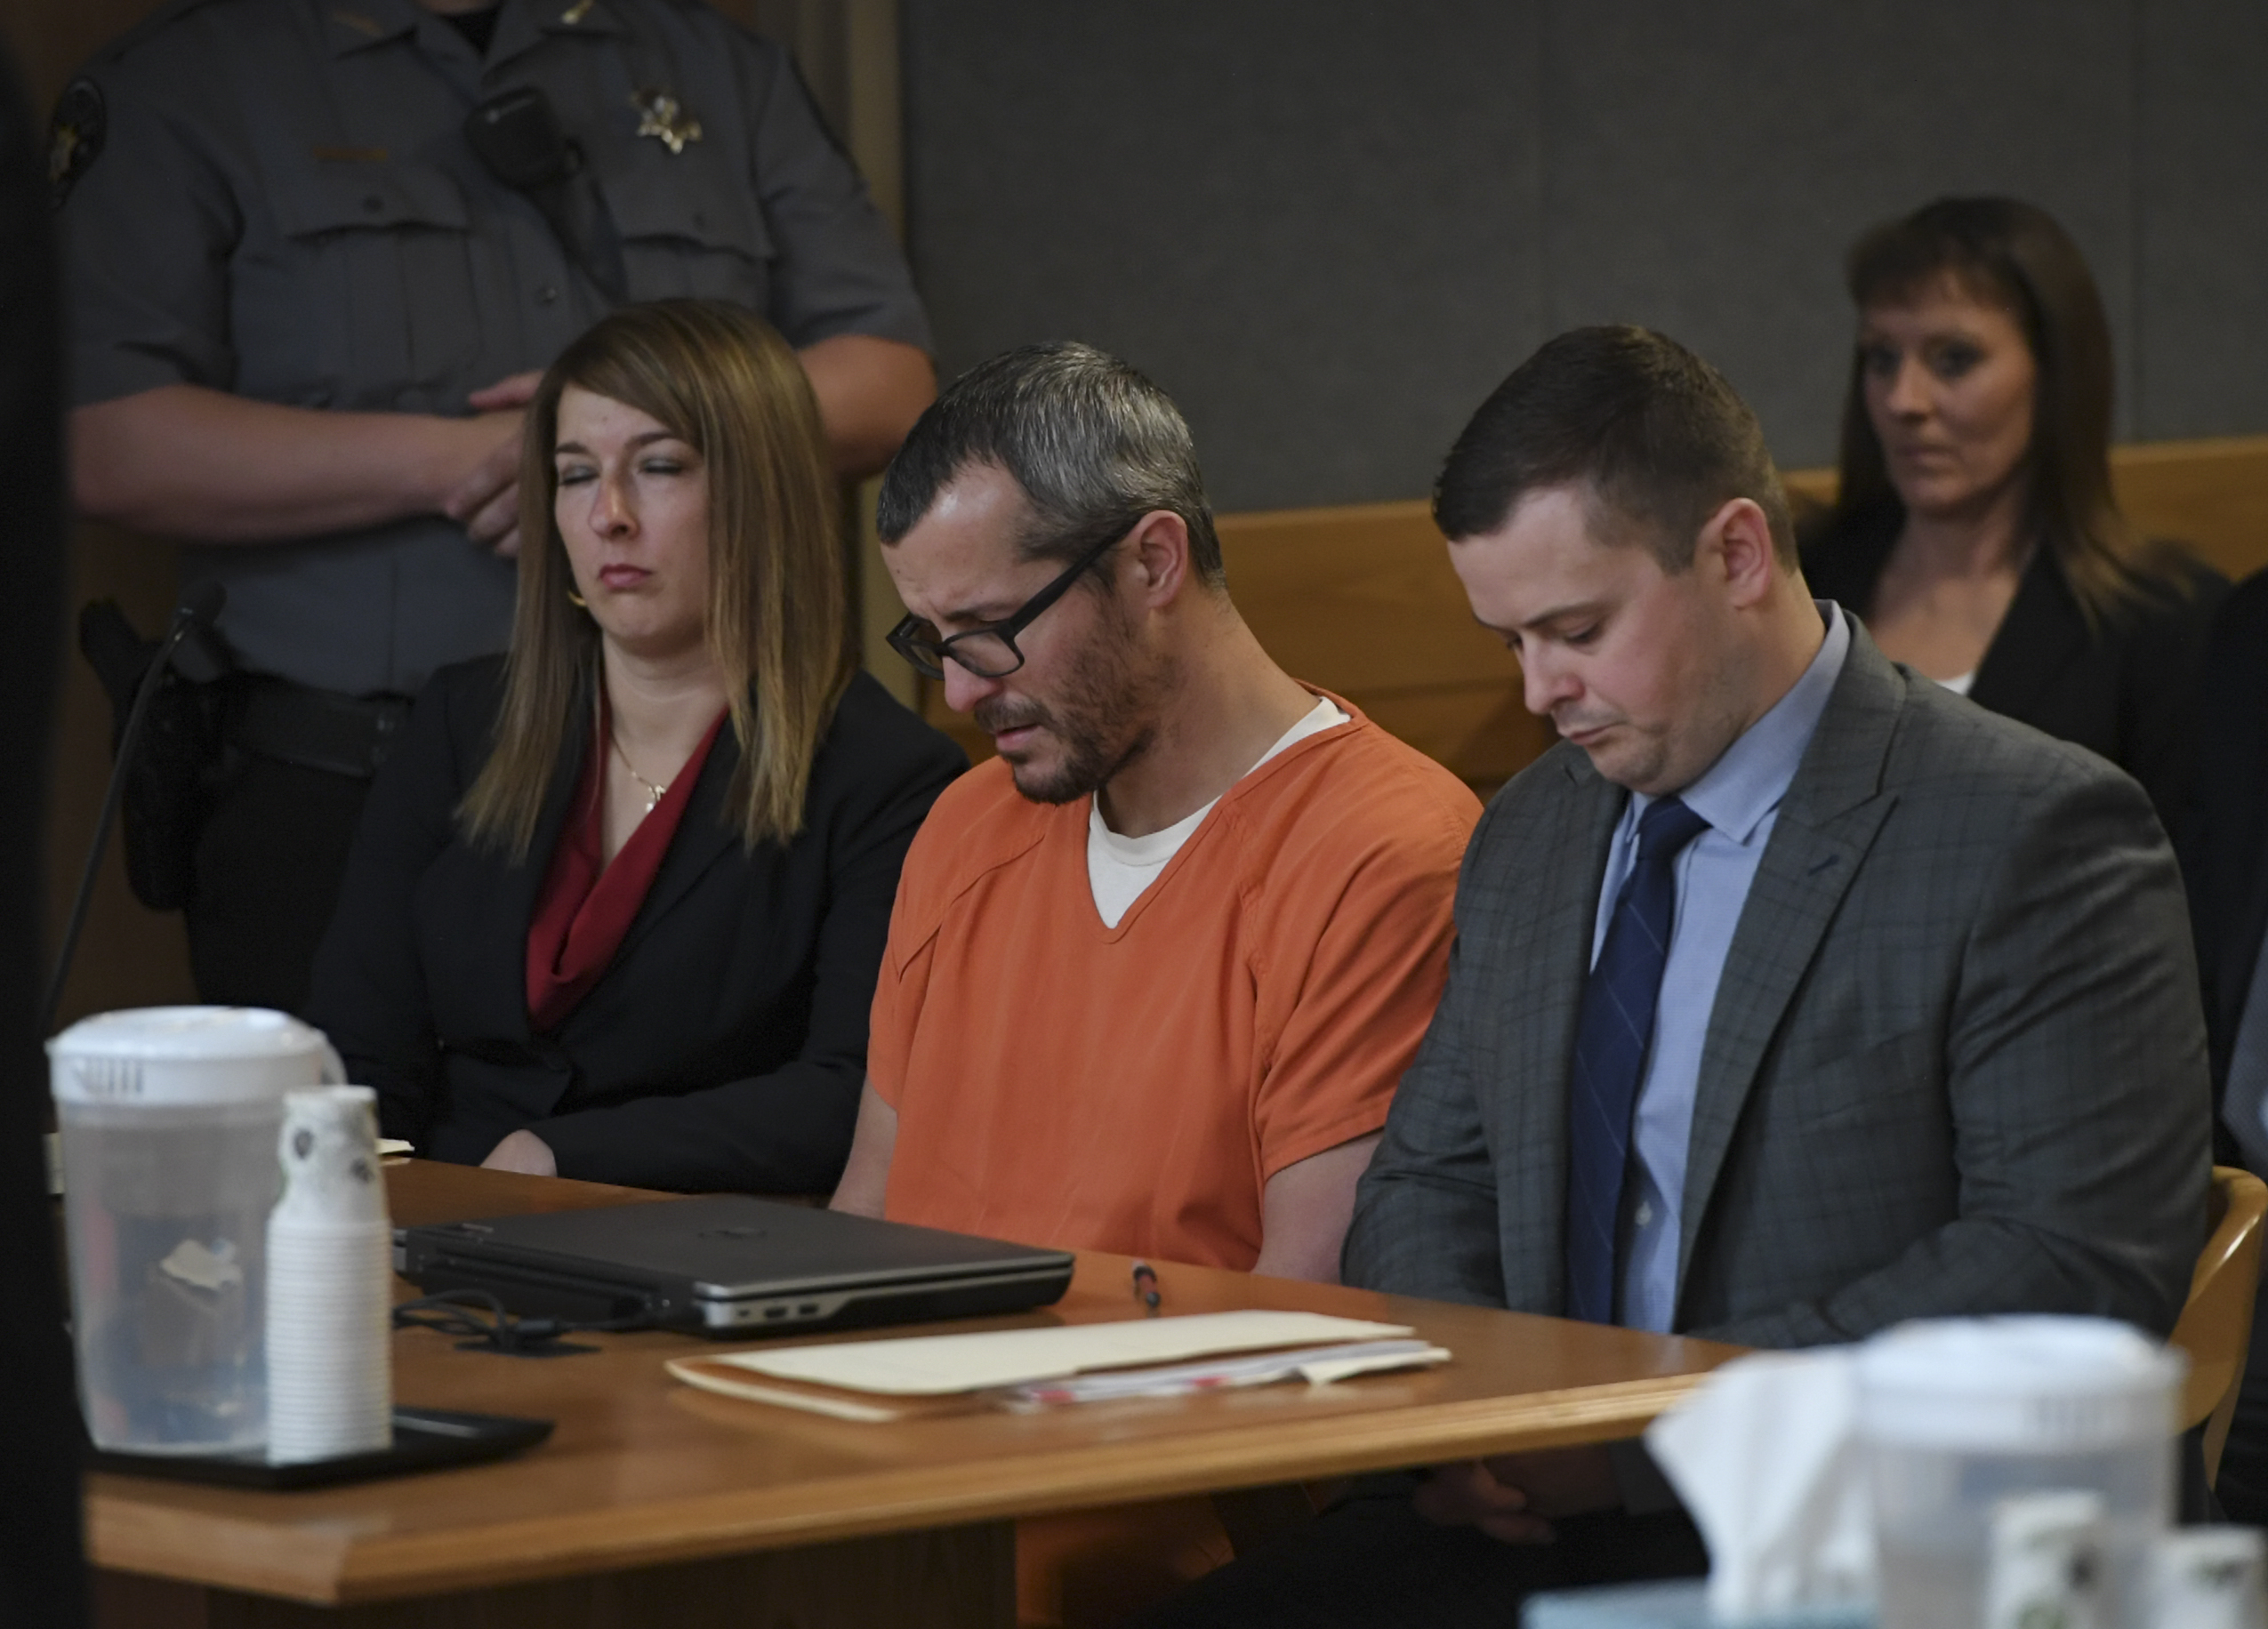 Chris Watts sits in court for his sentencing hearing at the Weld County Courthouse on November 19, 2018 in Greeley, Colorado (Source: RJ Sangosti/The Denver Post via Getty Images)